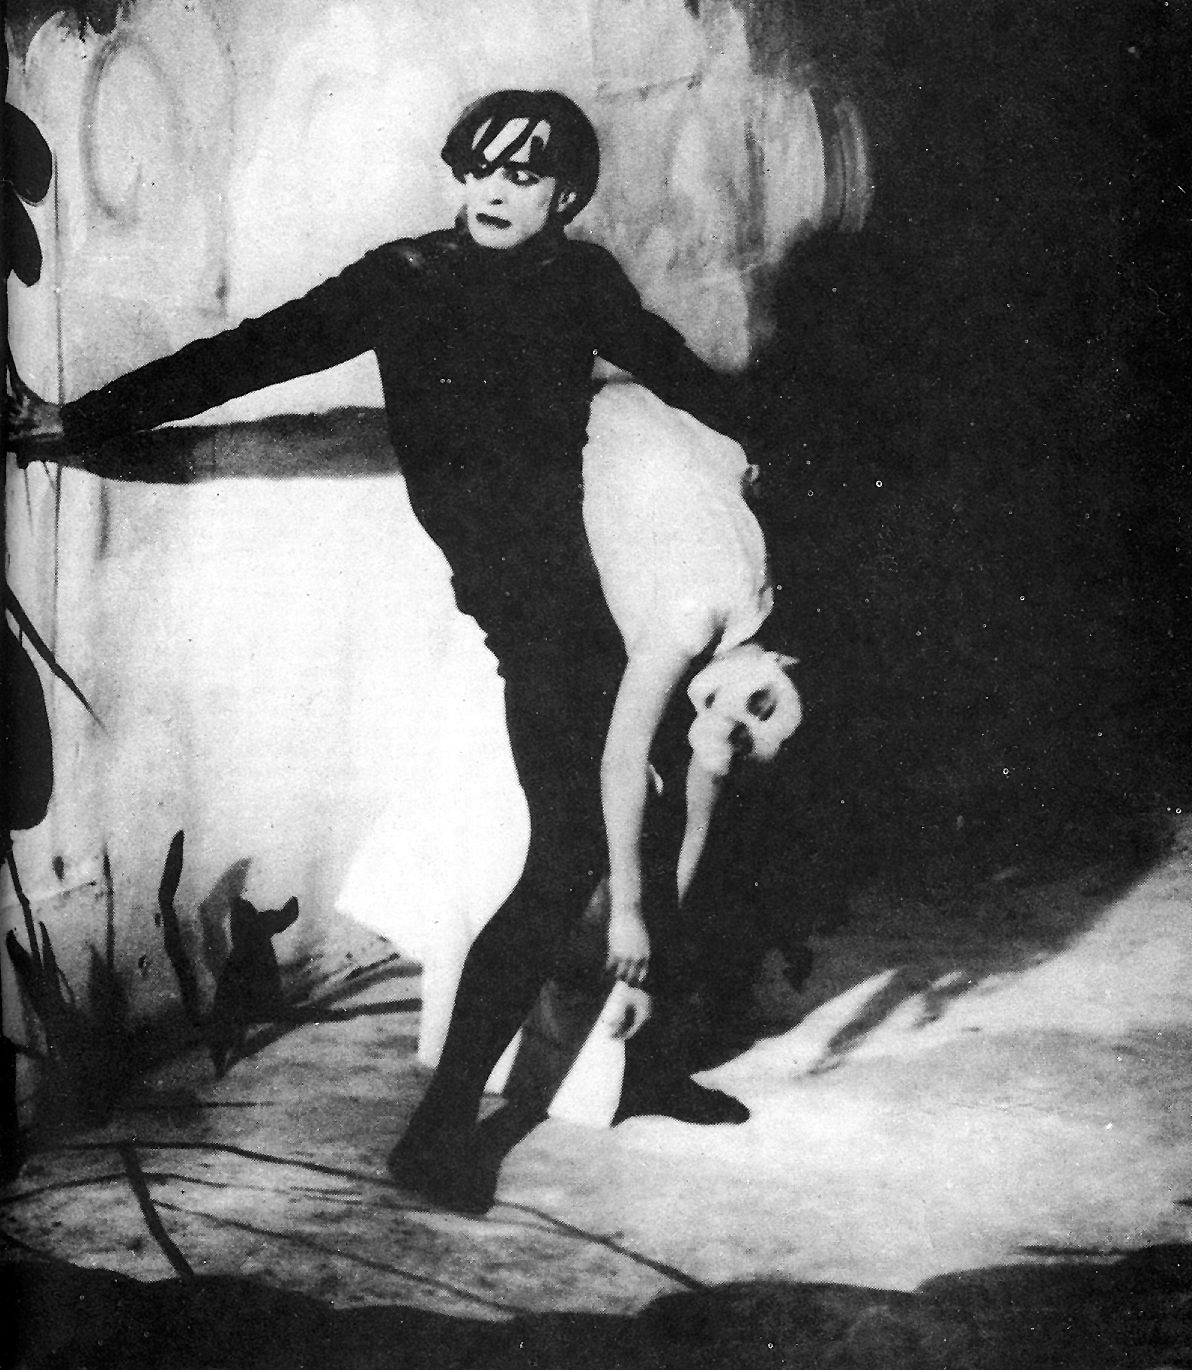 The cabinet of dr caligari 1920 silent german film - The cabinet of dr caligari 1920 full movie ...